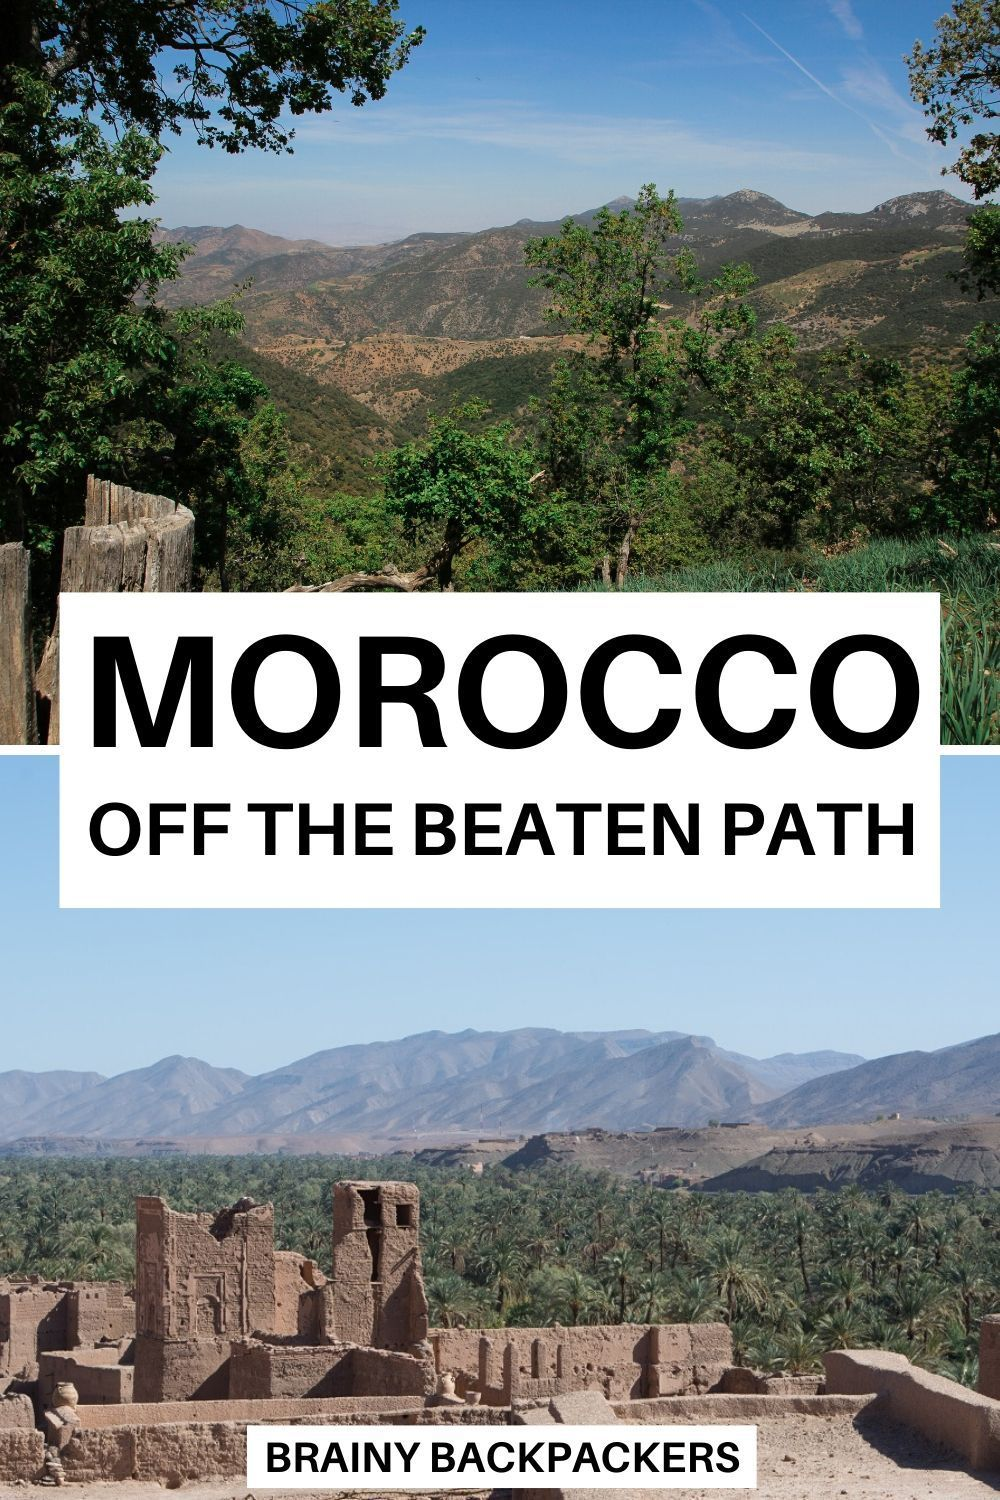 Are you planning a trip to Morocco? Why not travel Morocco off the beaten path? Here is a great collection of beautiful offbeat Morocco destinations for your bucket list! #responsibletourism #sustainabletourism #offthebeatentrack #brainybackpackers #traveltips #africa #northafrica #beautifulplaces #responsibletravel